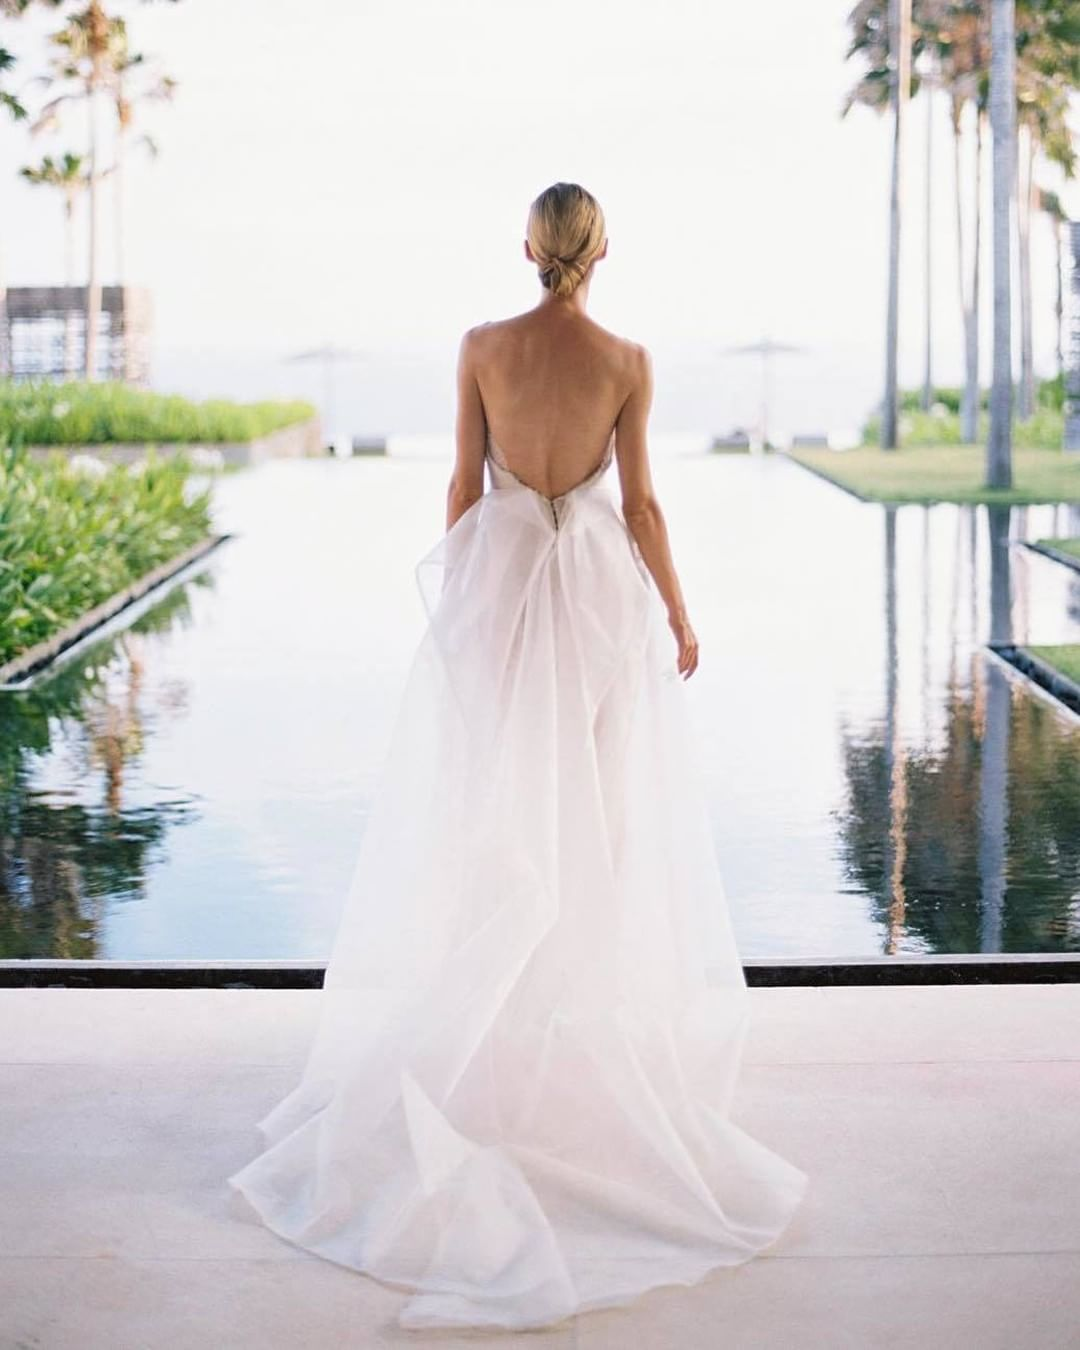 Wedding Dress : Absolutely in love with this diaphanous wedding ...